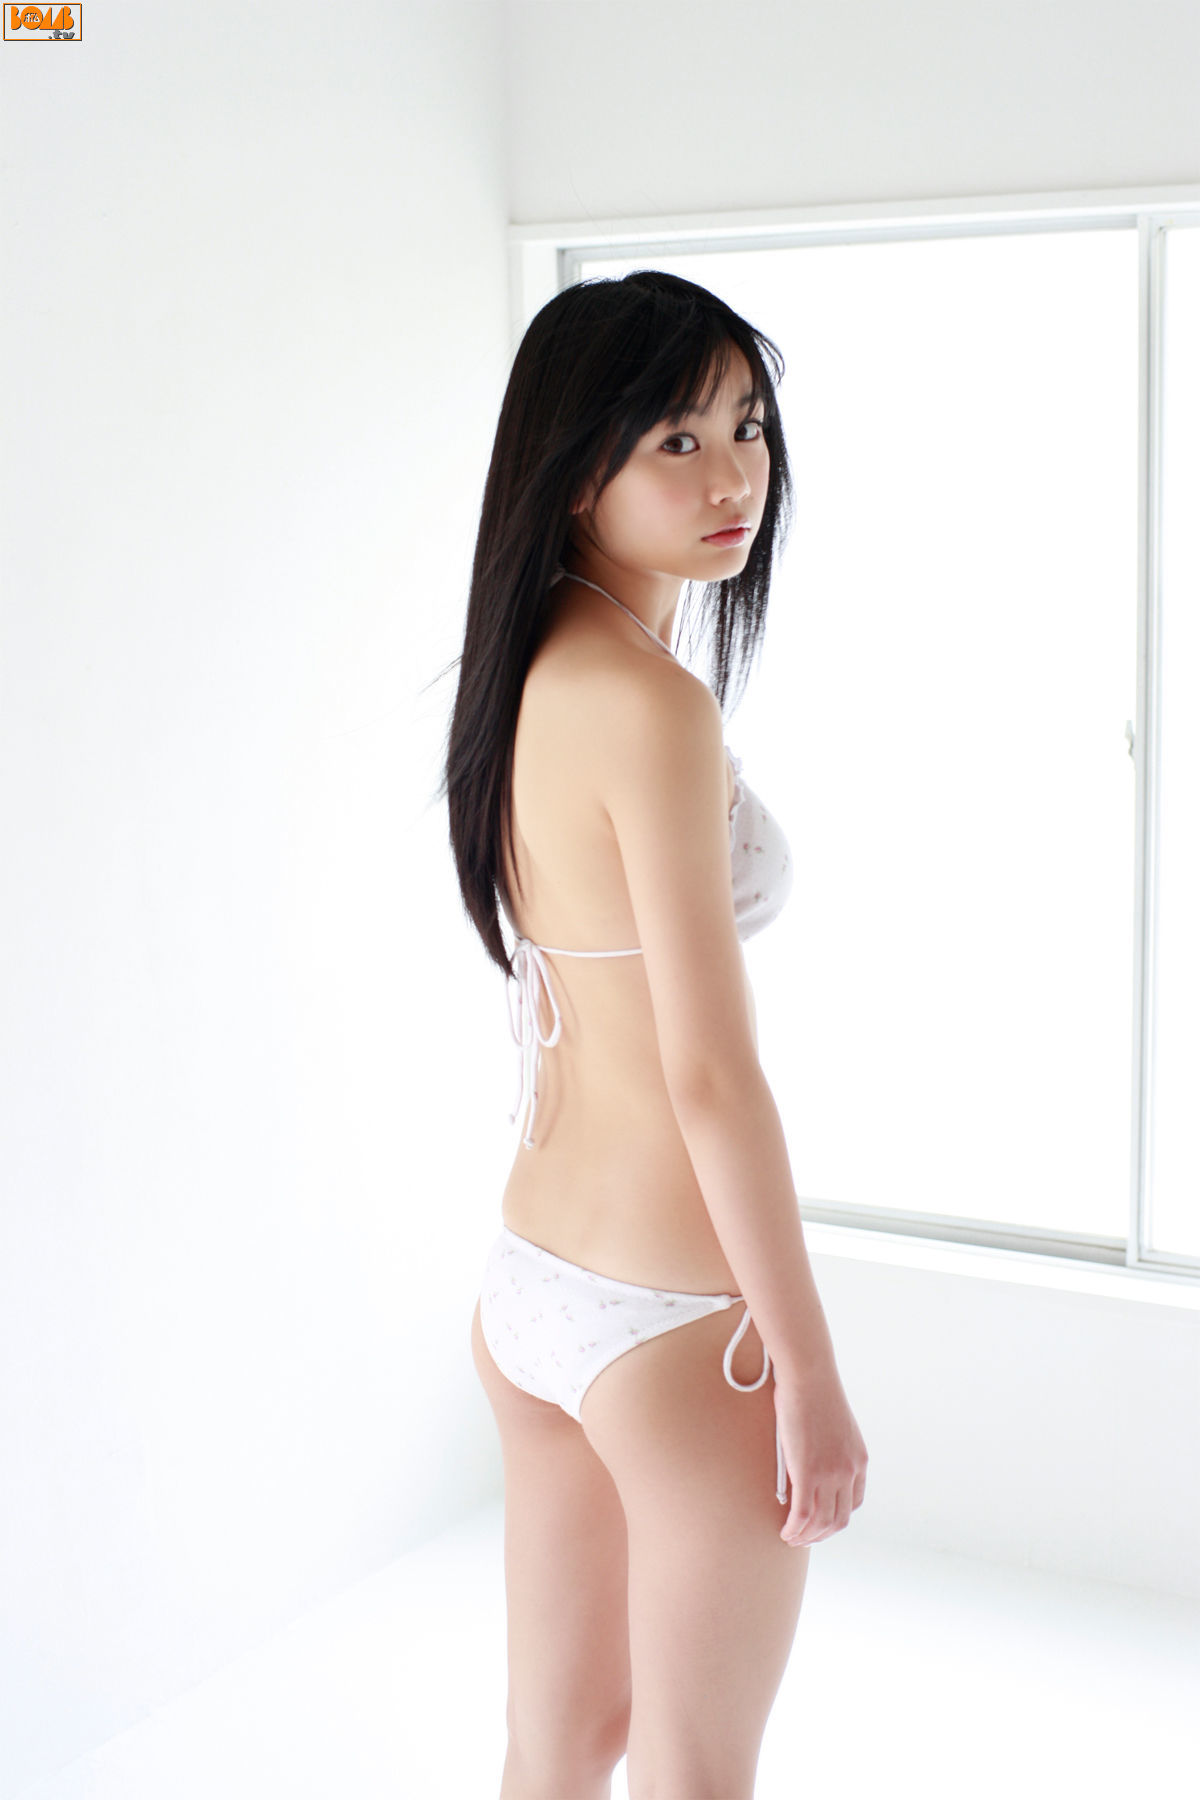 The ultimate swimsuit gravure for the next generation022